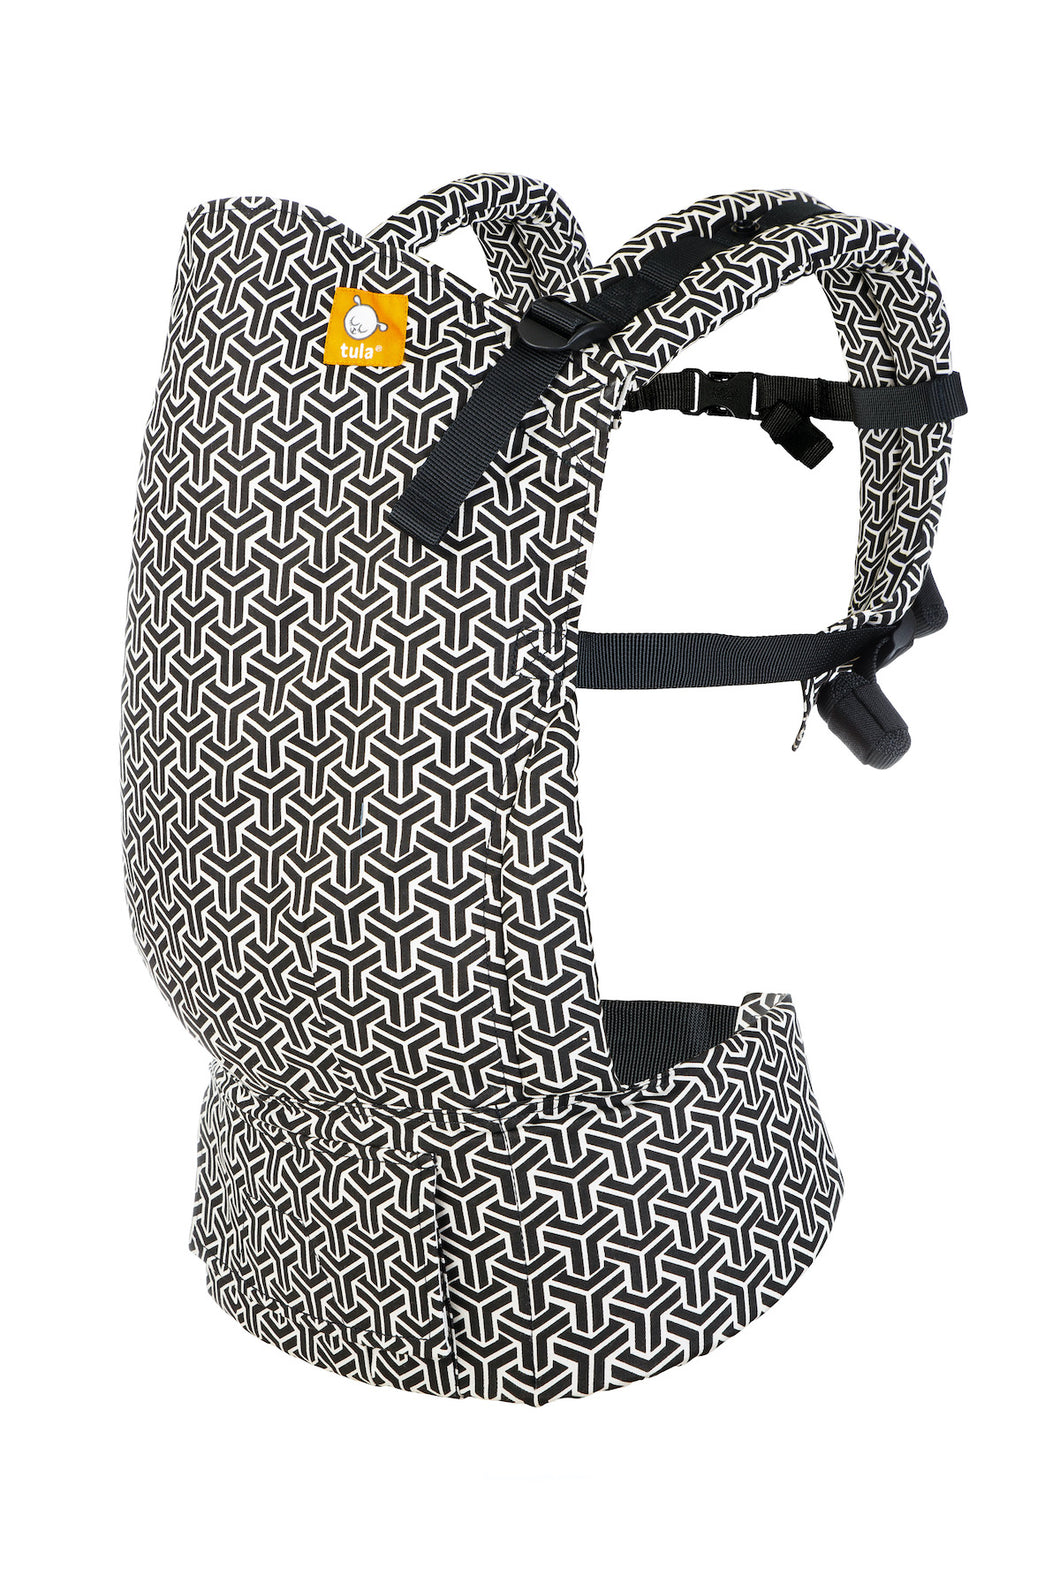 Forever - Tula Standard Carrier Ergonomic Baby Carrier